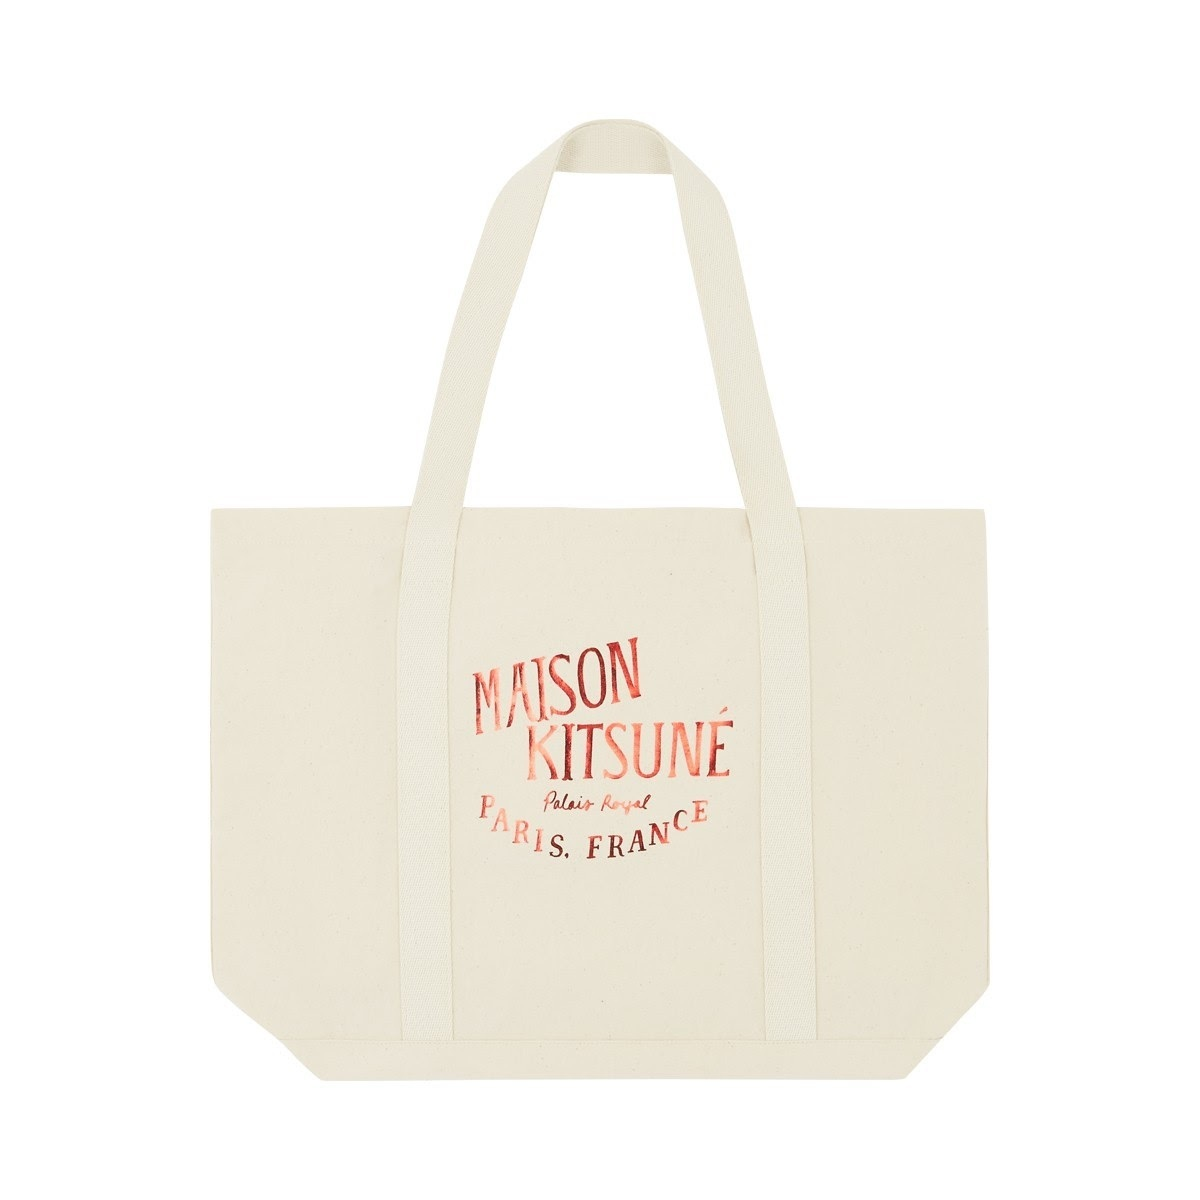 【国内発送】MAISON KITSUNE SHOPPING BAG PALAIS ROYAL★新色♪